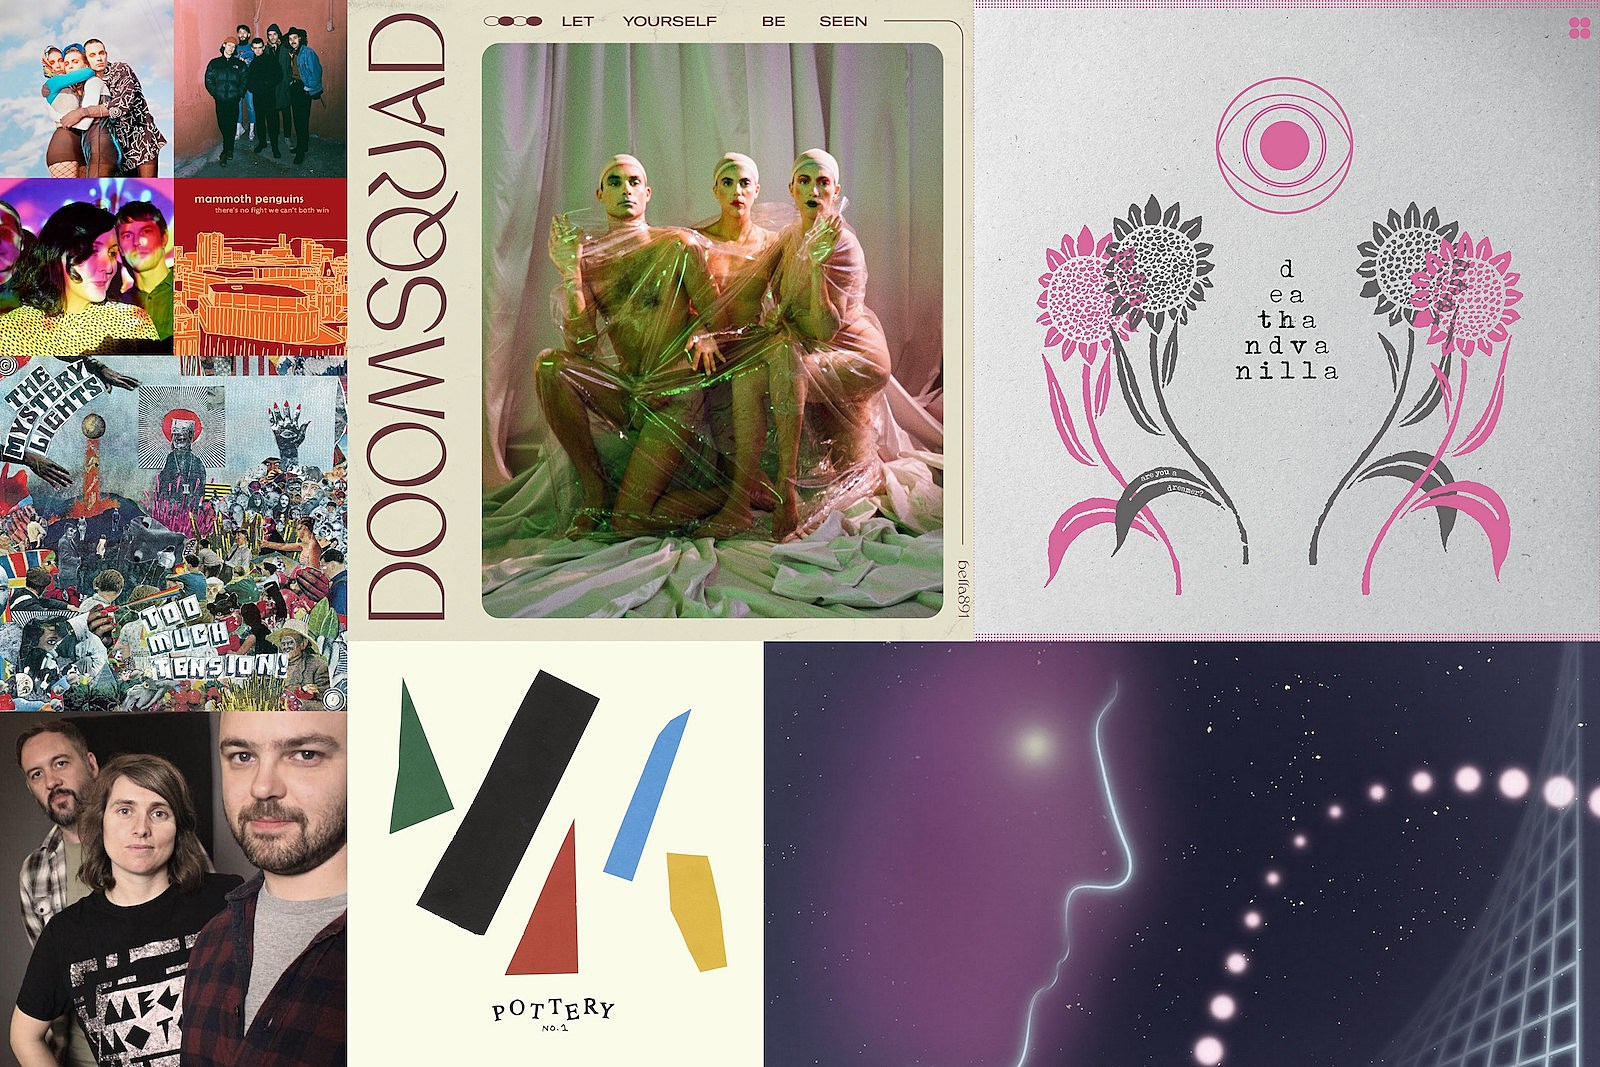 indie basement: pottery, mammoth penguins, death and vanilla, doomsquad, the mystery lights, missions,